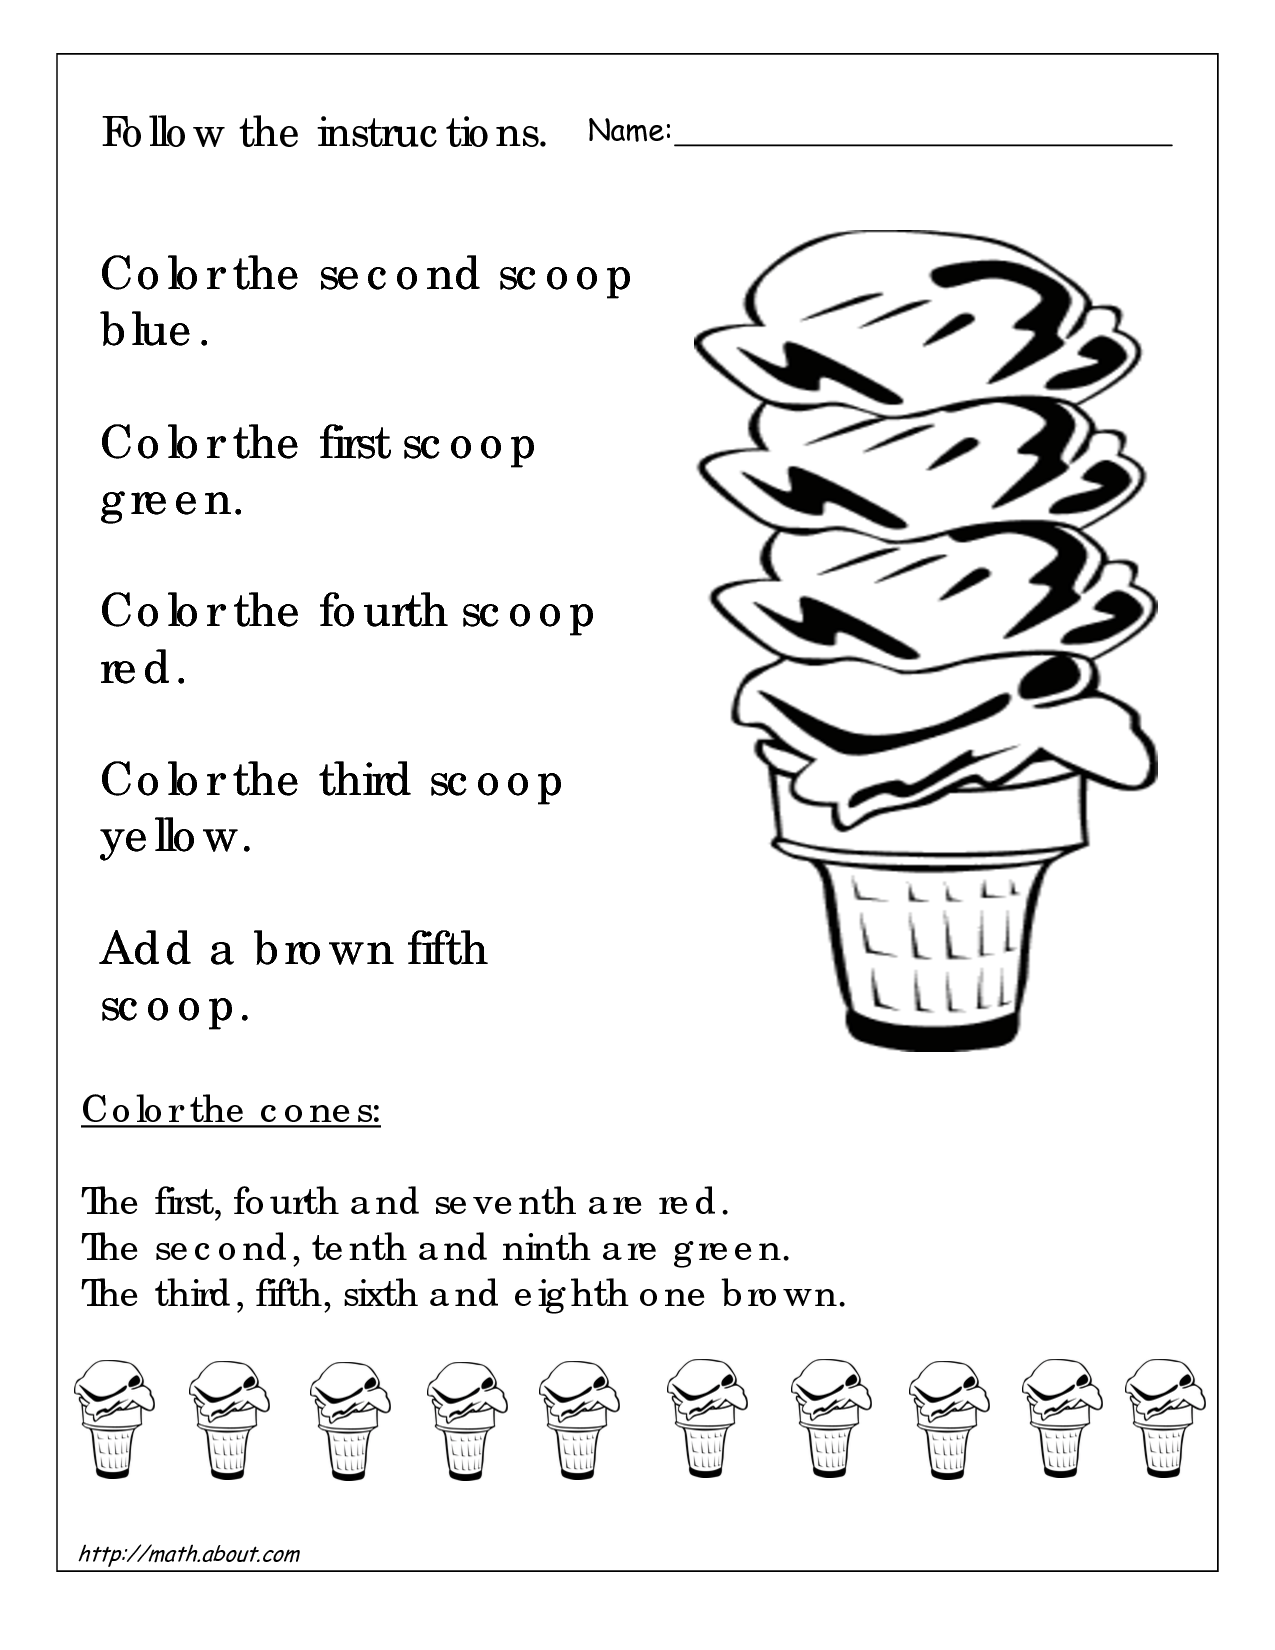 Worksheets 3rd Grade Math Worksheets Printable math worksheets for 3rd graders 1st grade printable students